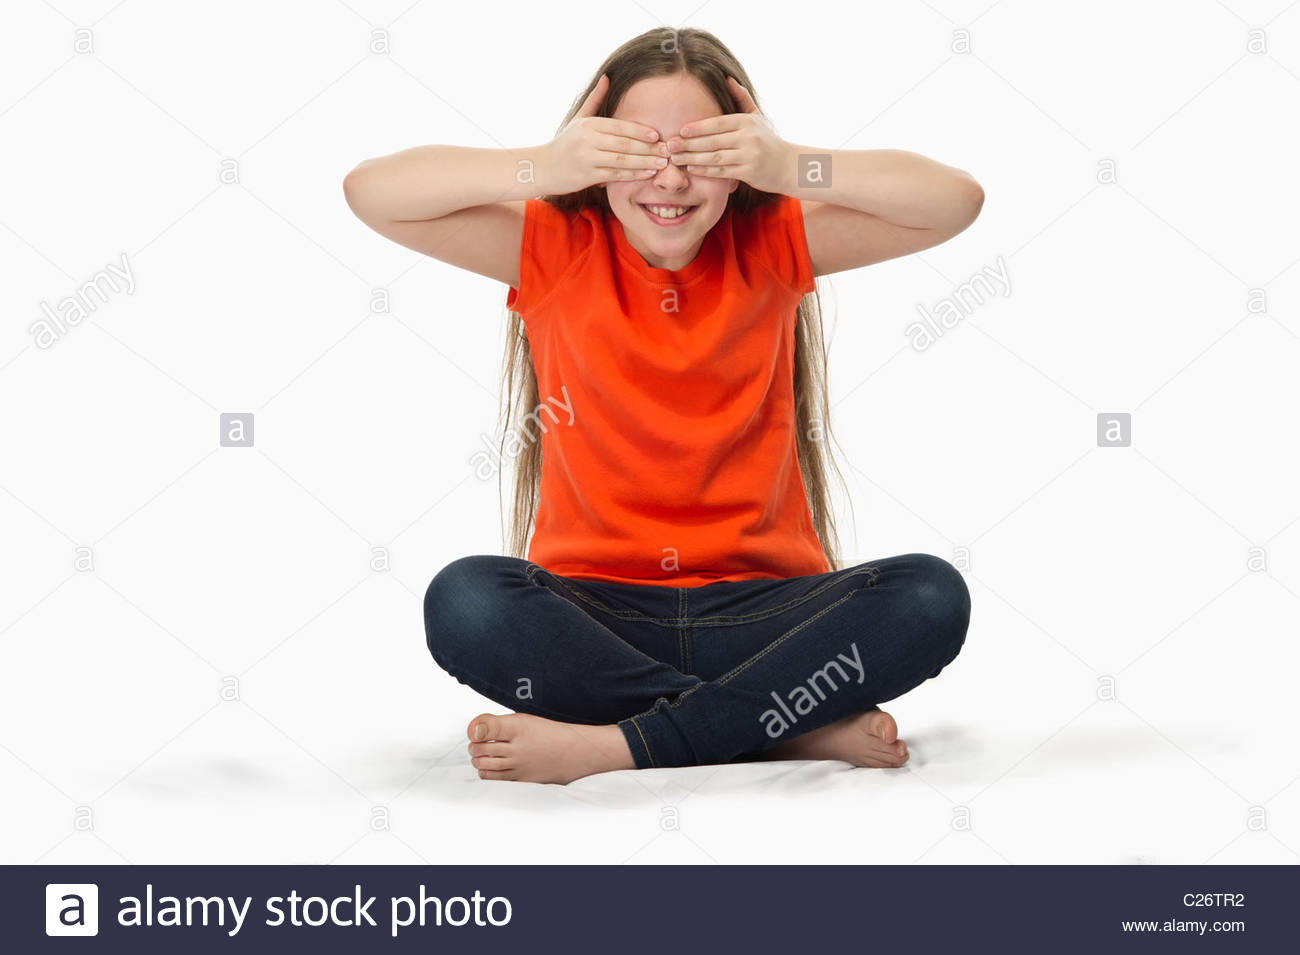 close-up of a 10 year old girl with hands covering eyes playing hide and seek - Stock Image